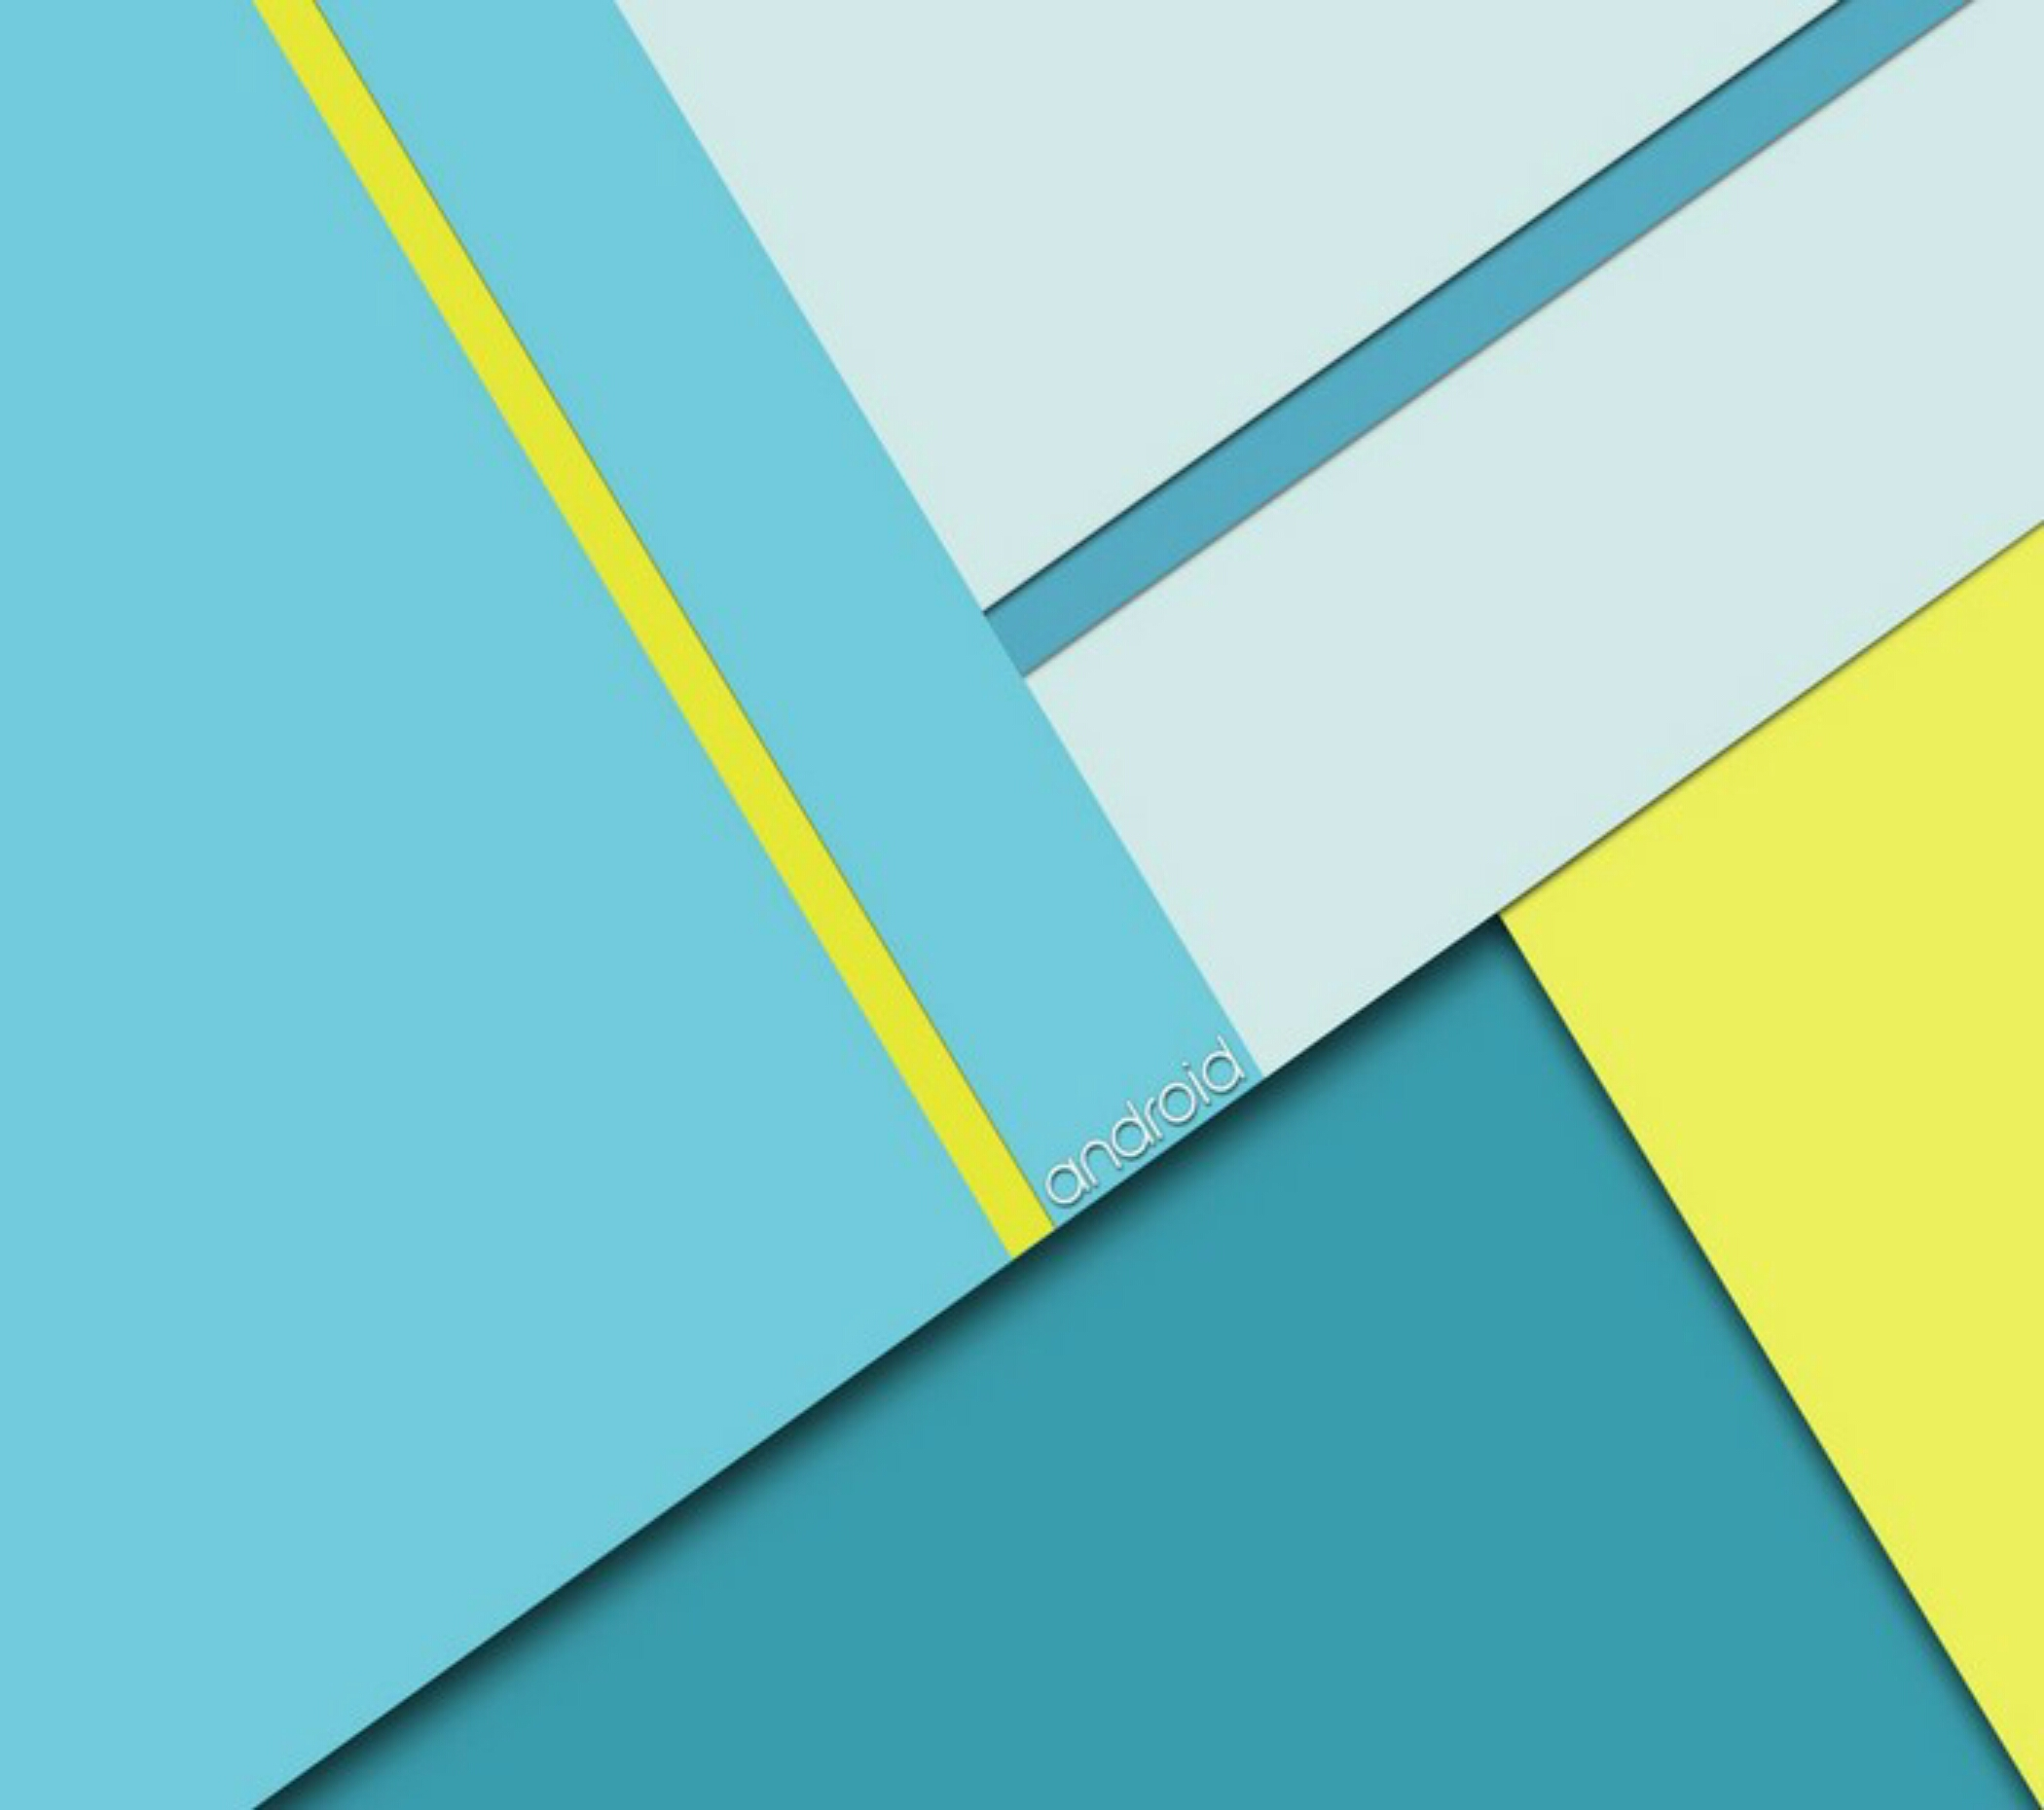 Android Lollipop Wallpaper